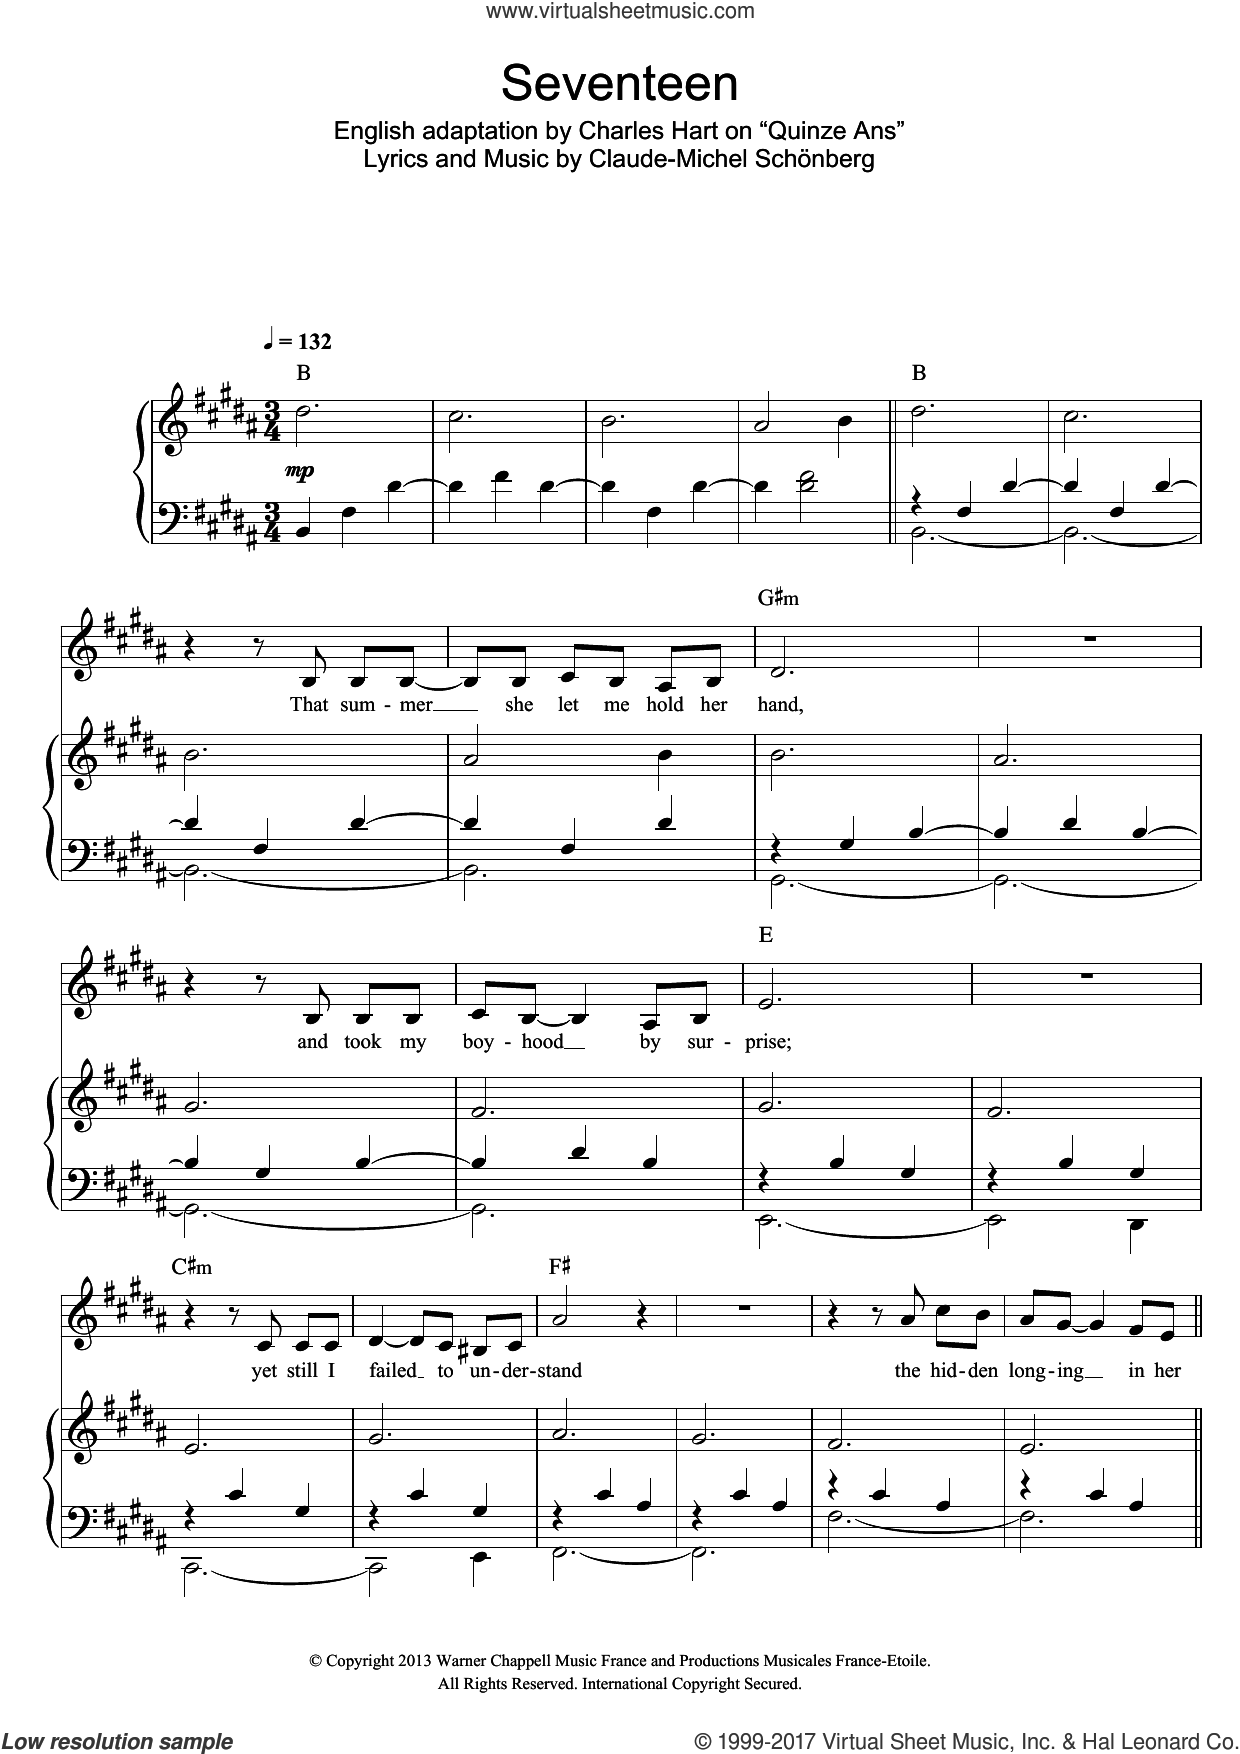 Seventeen sheet music for voice and piano by Russell Watson, Charles Hart and Claude-Michel Schonberg, classical score, intermediate skill level